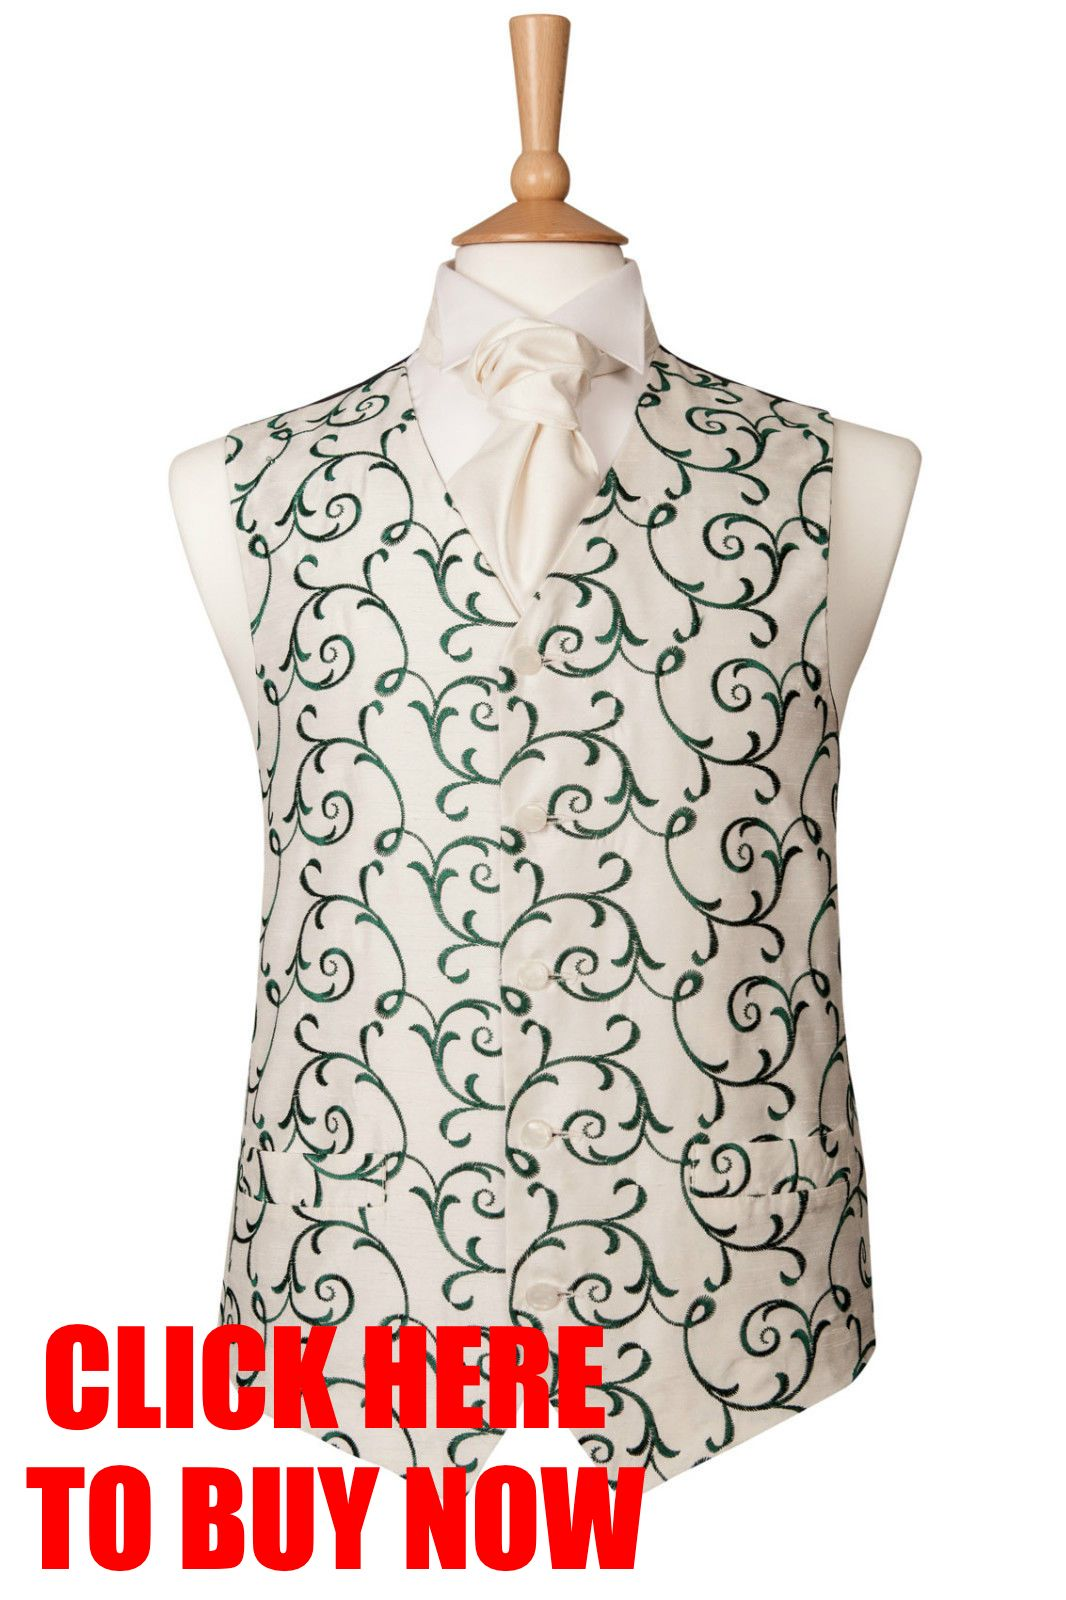 MENS-IVORY-GREEN-SWIRL-WEDDING-SUIT-WAISTCOAT-IDEAL-CHRISTMAS-XMAS-PRESENT